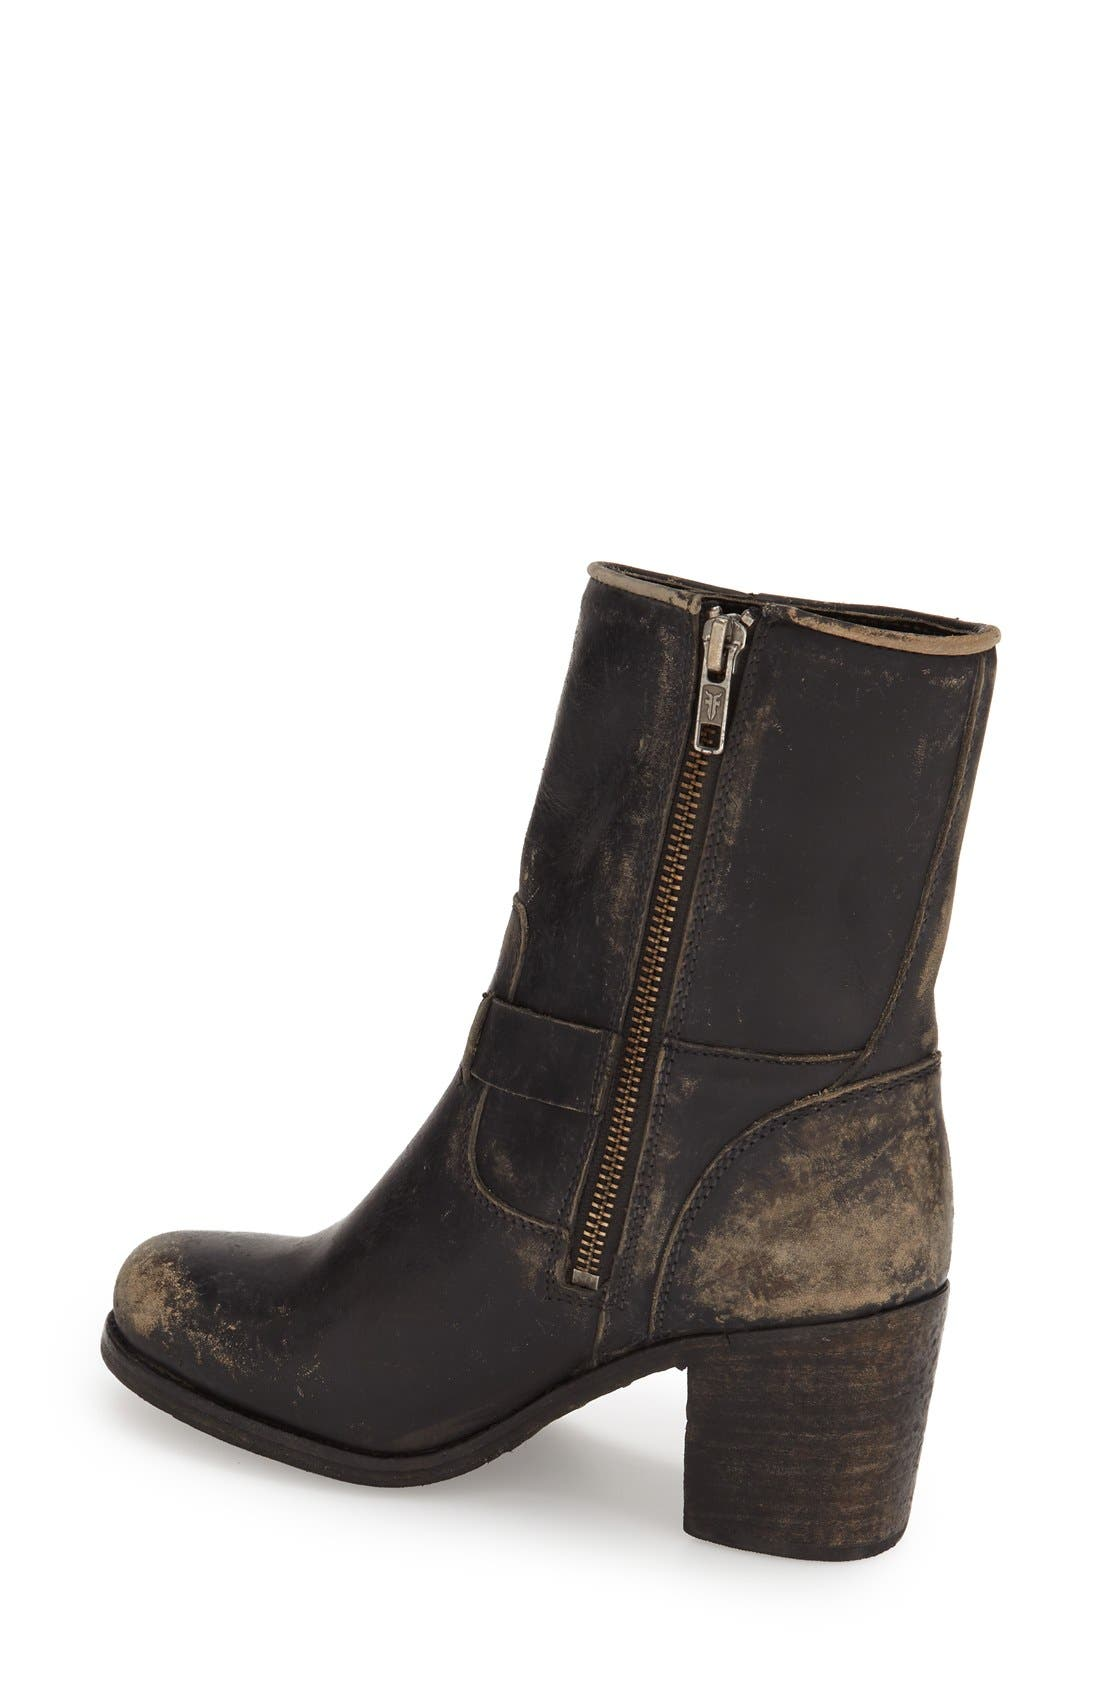 'Kelly' Belted Short Boot,                             Alternate thumbnail 4, color,                             001